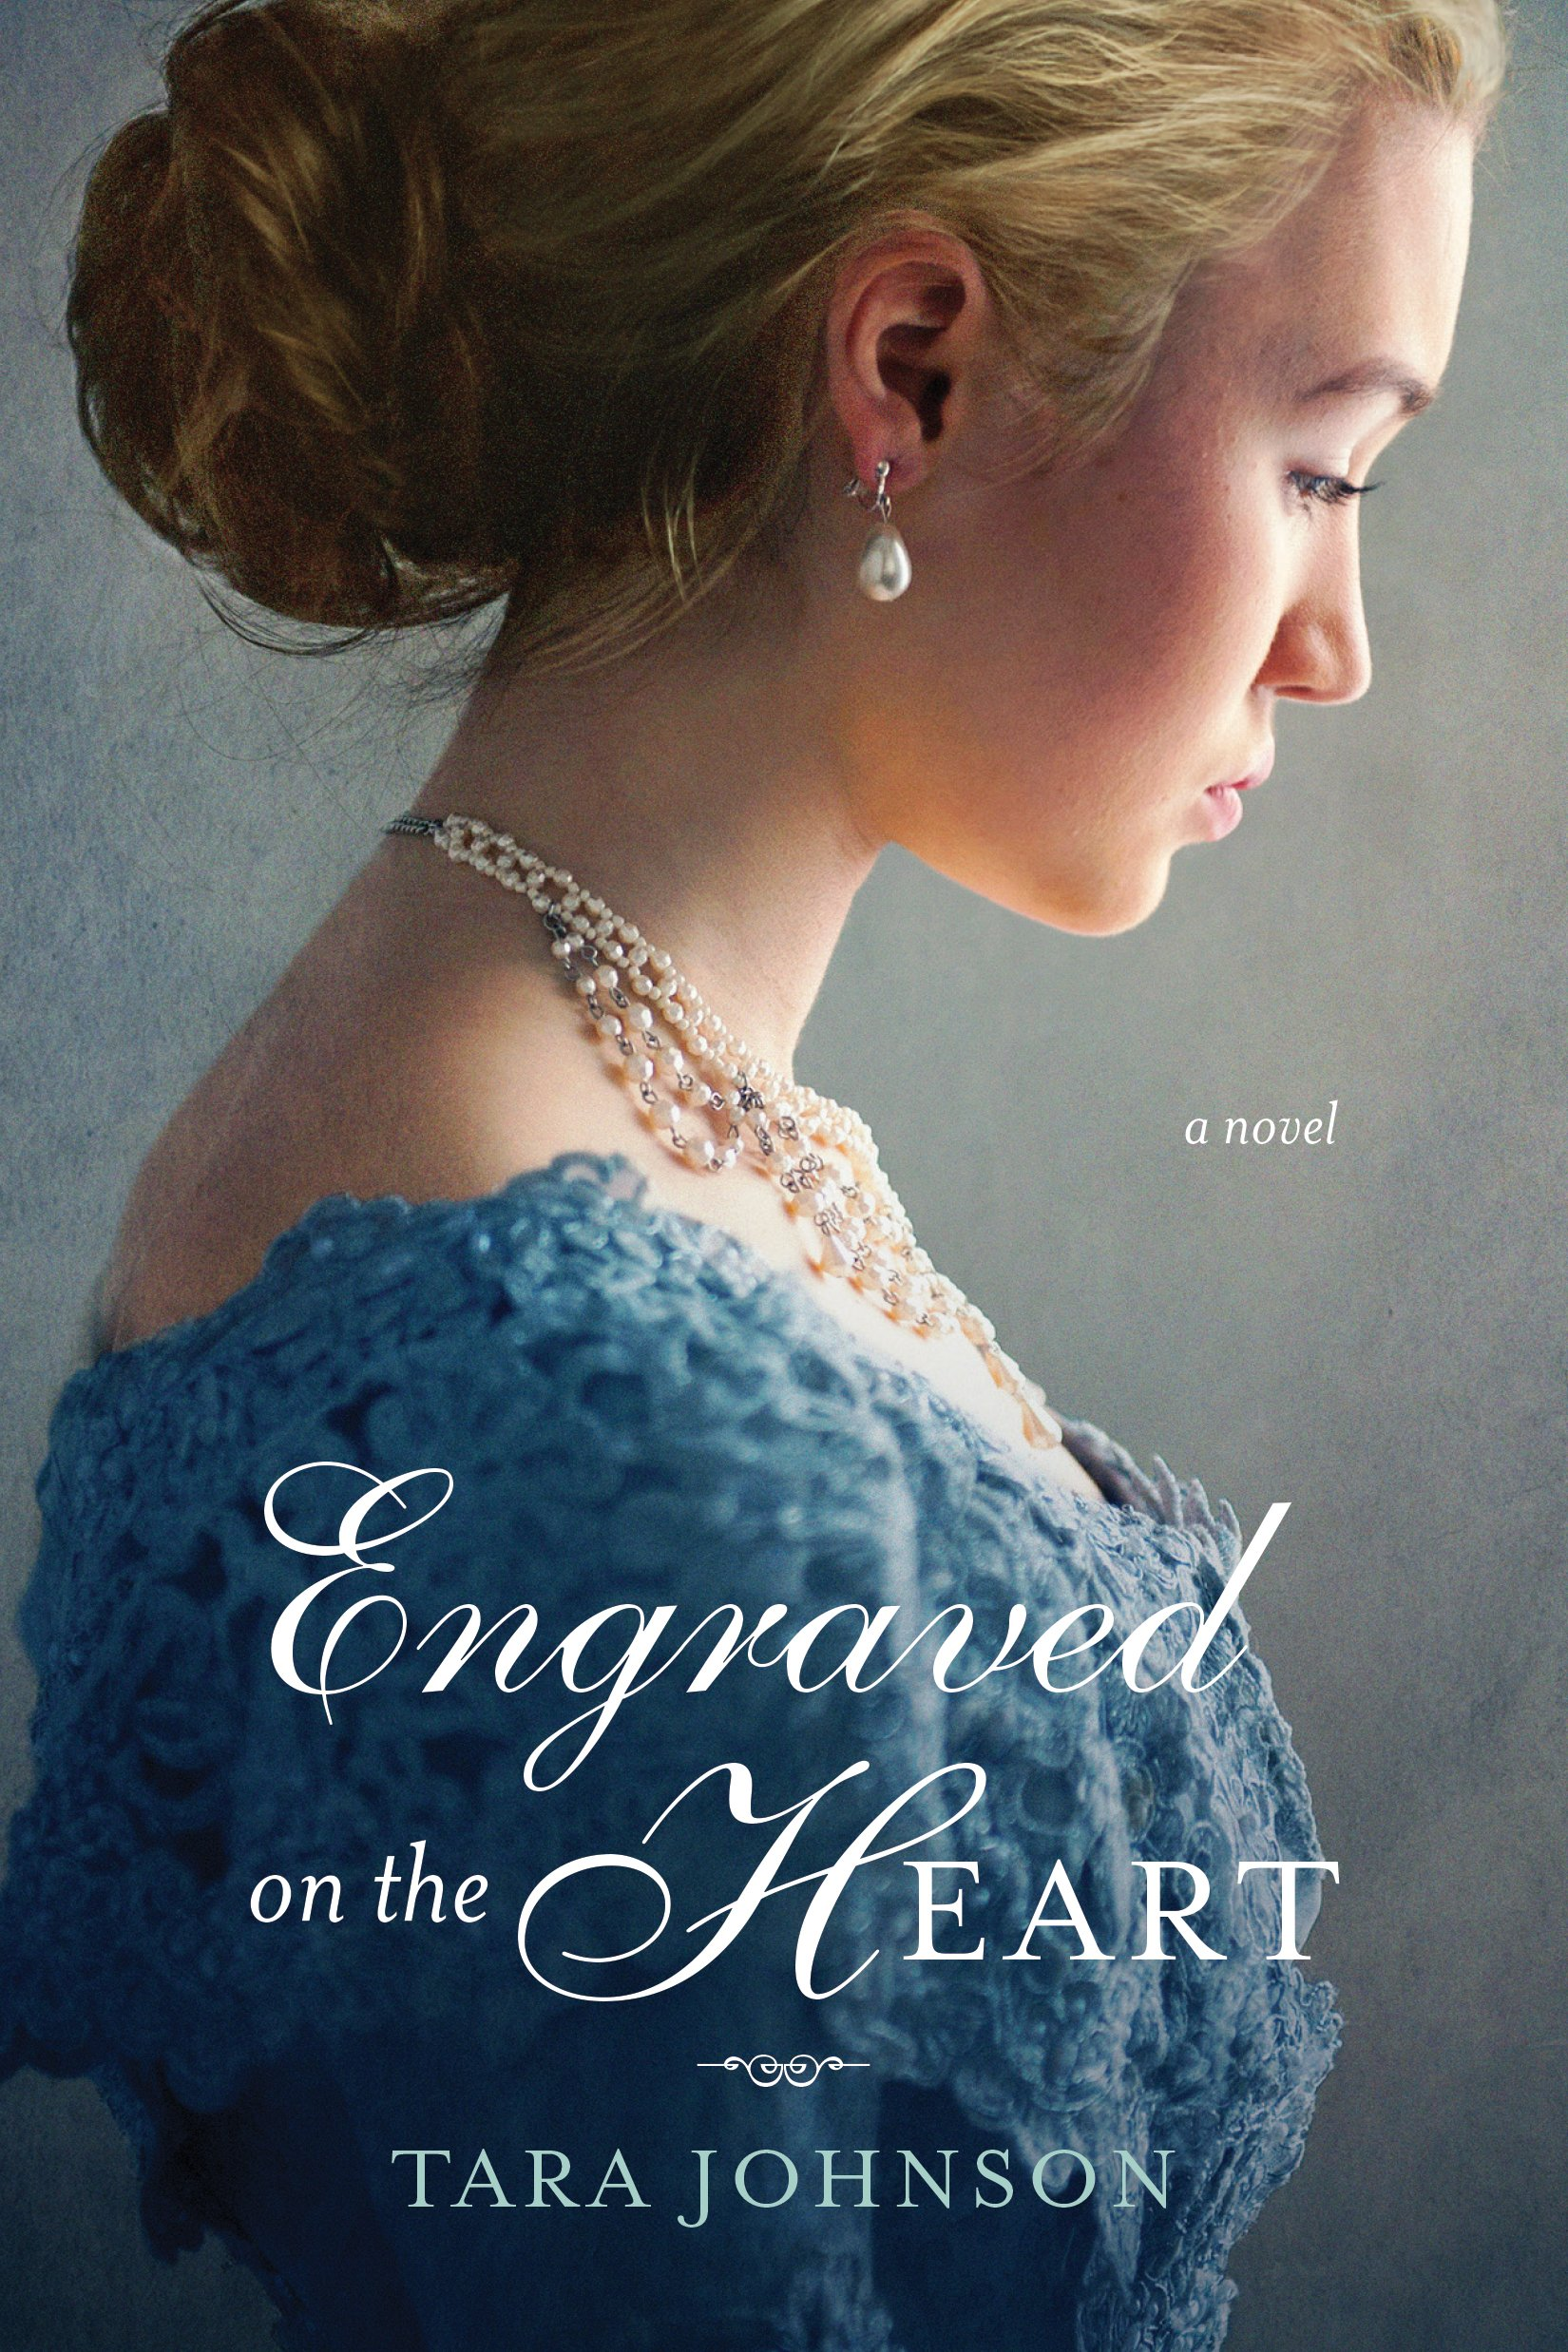 Engraved on the Heart by Tara Johnson